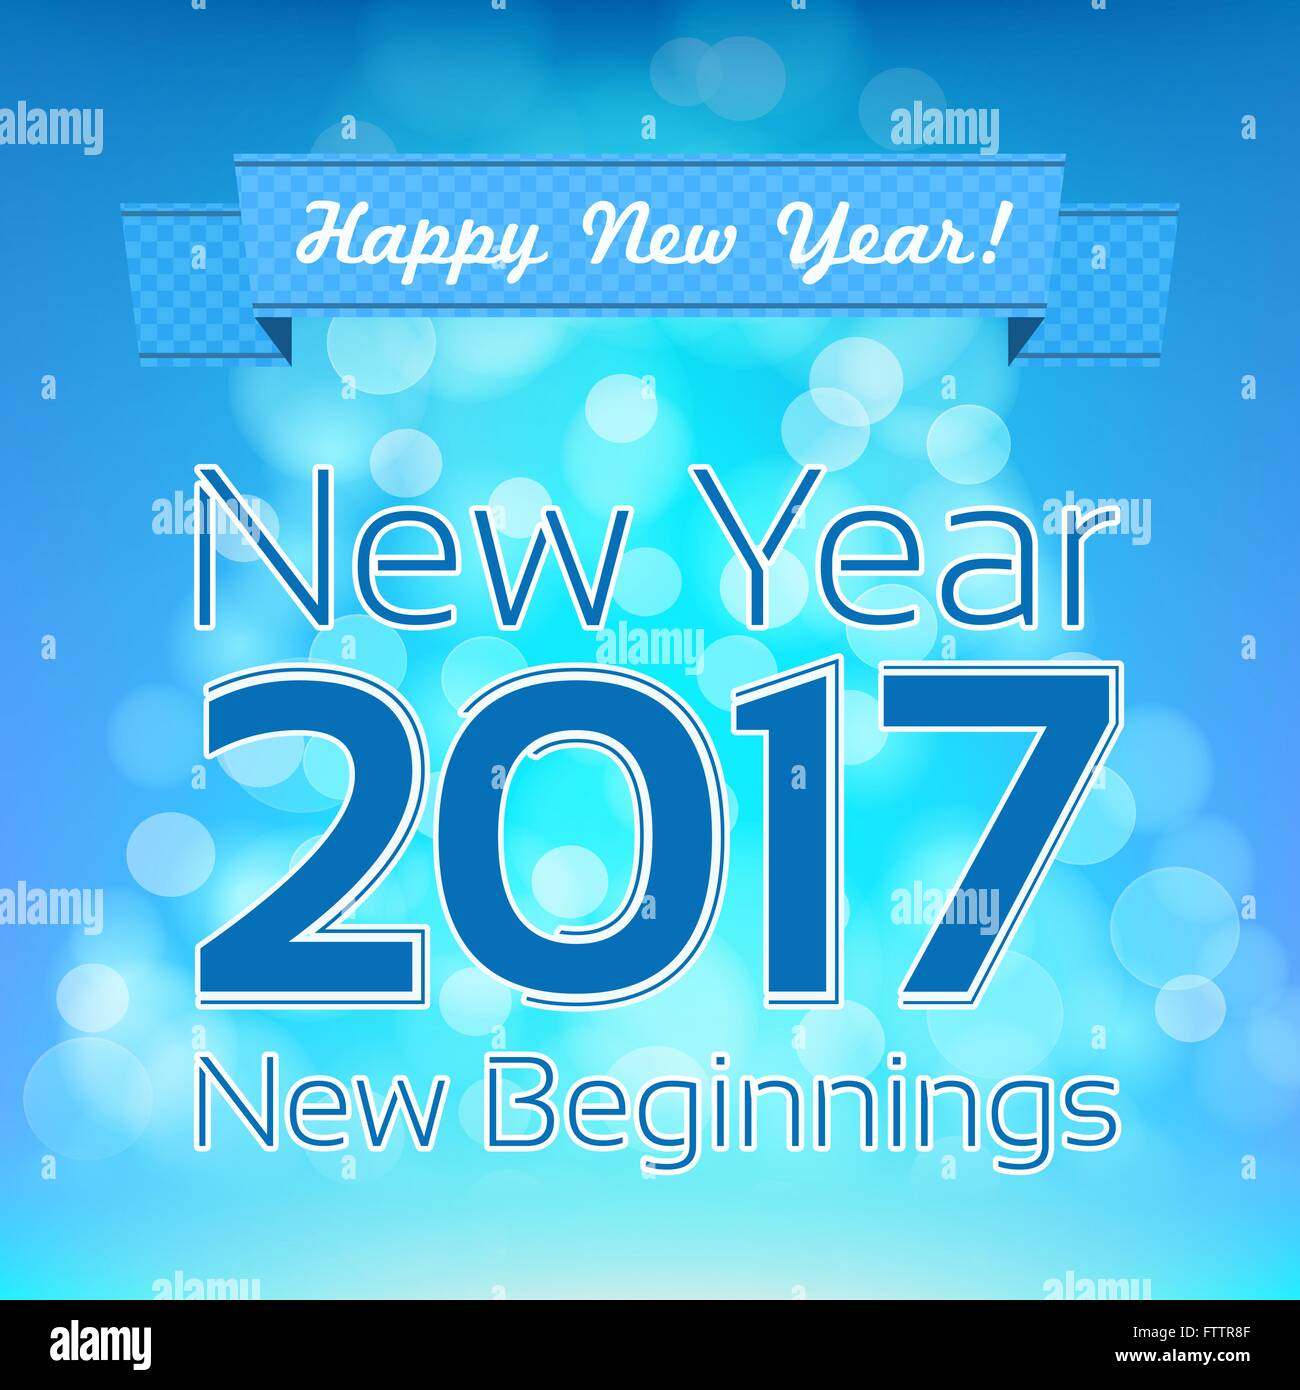 Happy New Year 2017 Wishes: Happy New Year Greeting Vector Design Template. New Year 2017 New Stock Vector Art